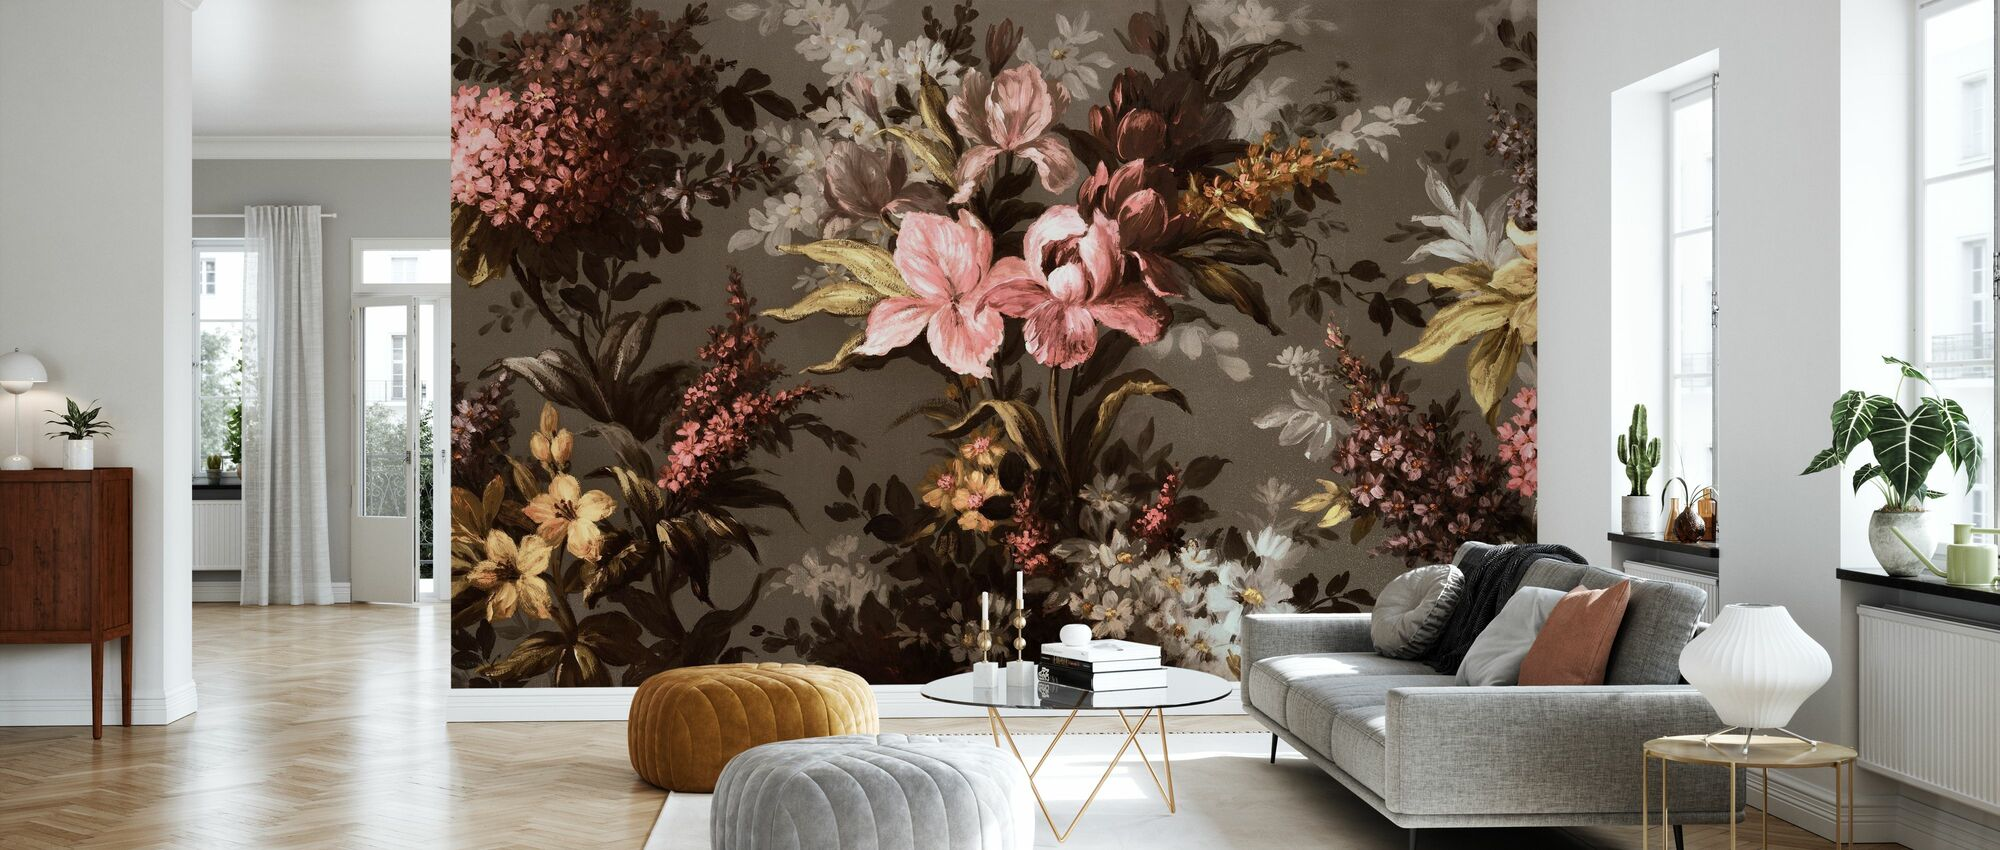 Boheme Flowering - Wallpaper - Living Room